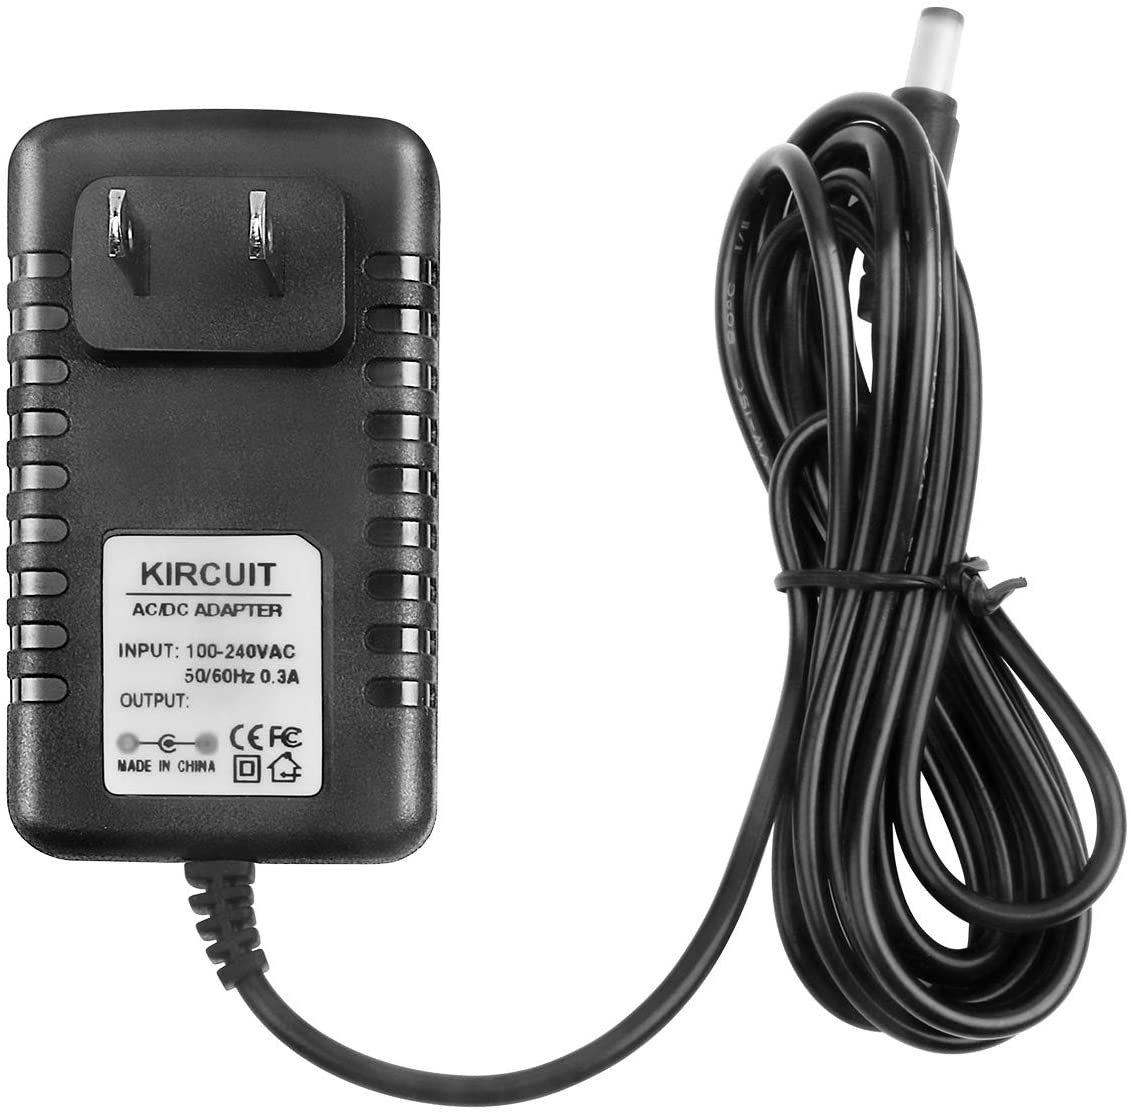 AC Adapter for Marantz PMD201 PMD221 PMD222 Pro Tape Recorder Power Supply Cord